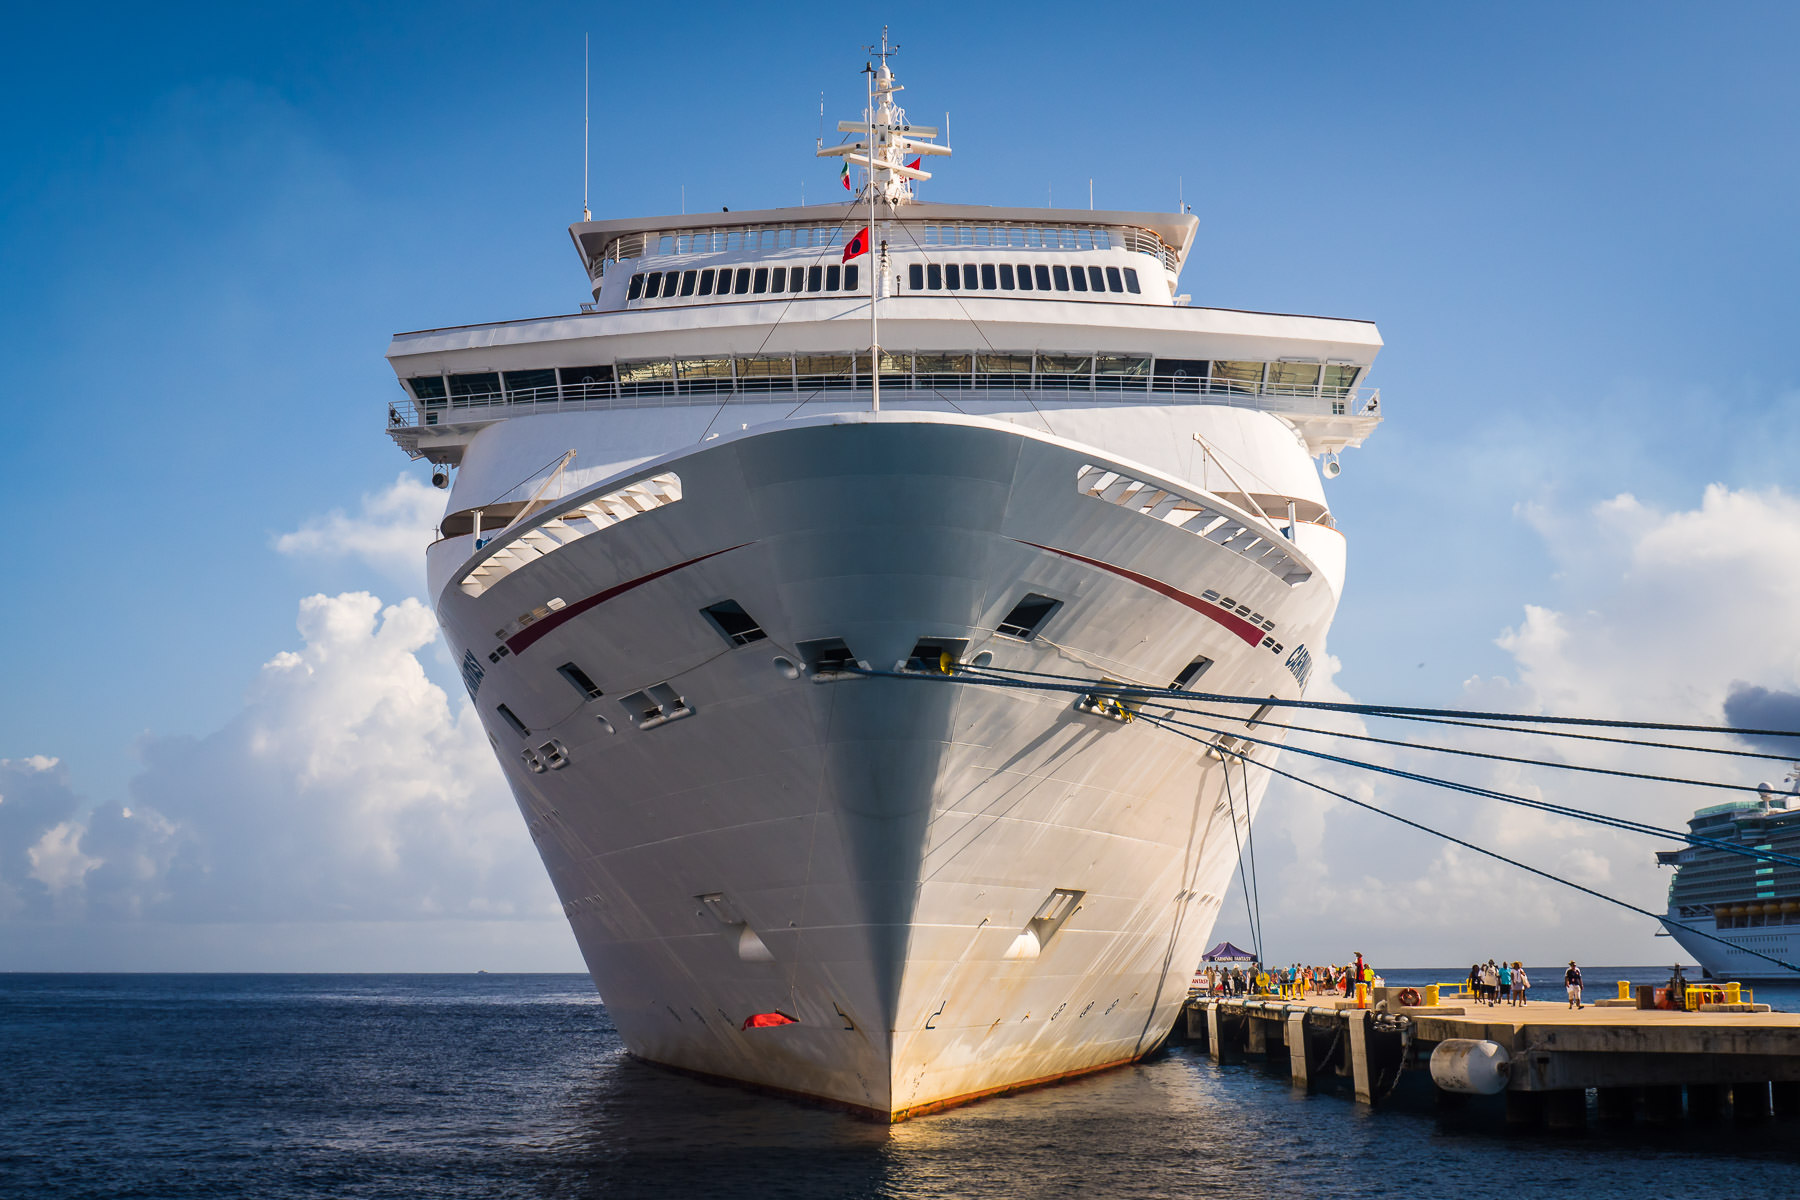 The bow of the cruise shipCarnival Fantasy looms over the adjacent pier at Cozumel, Mexico.